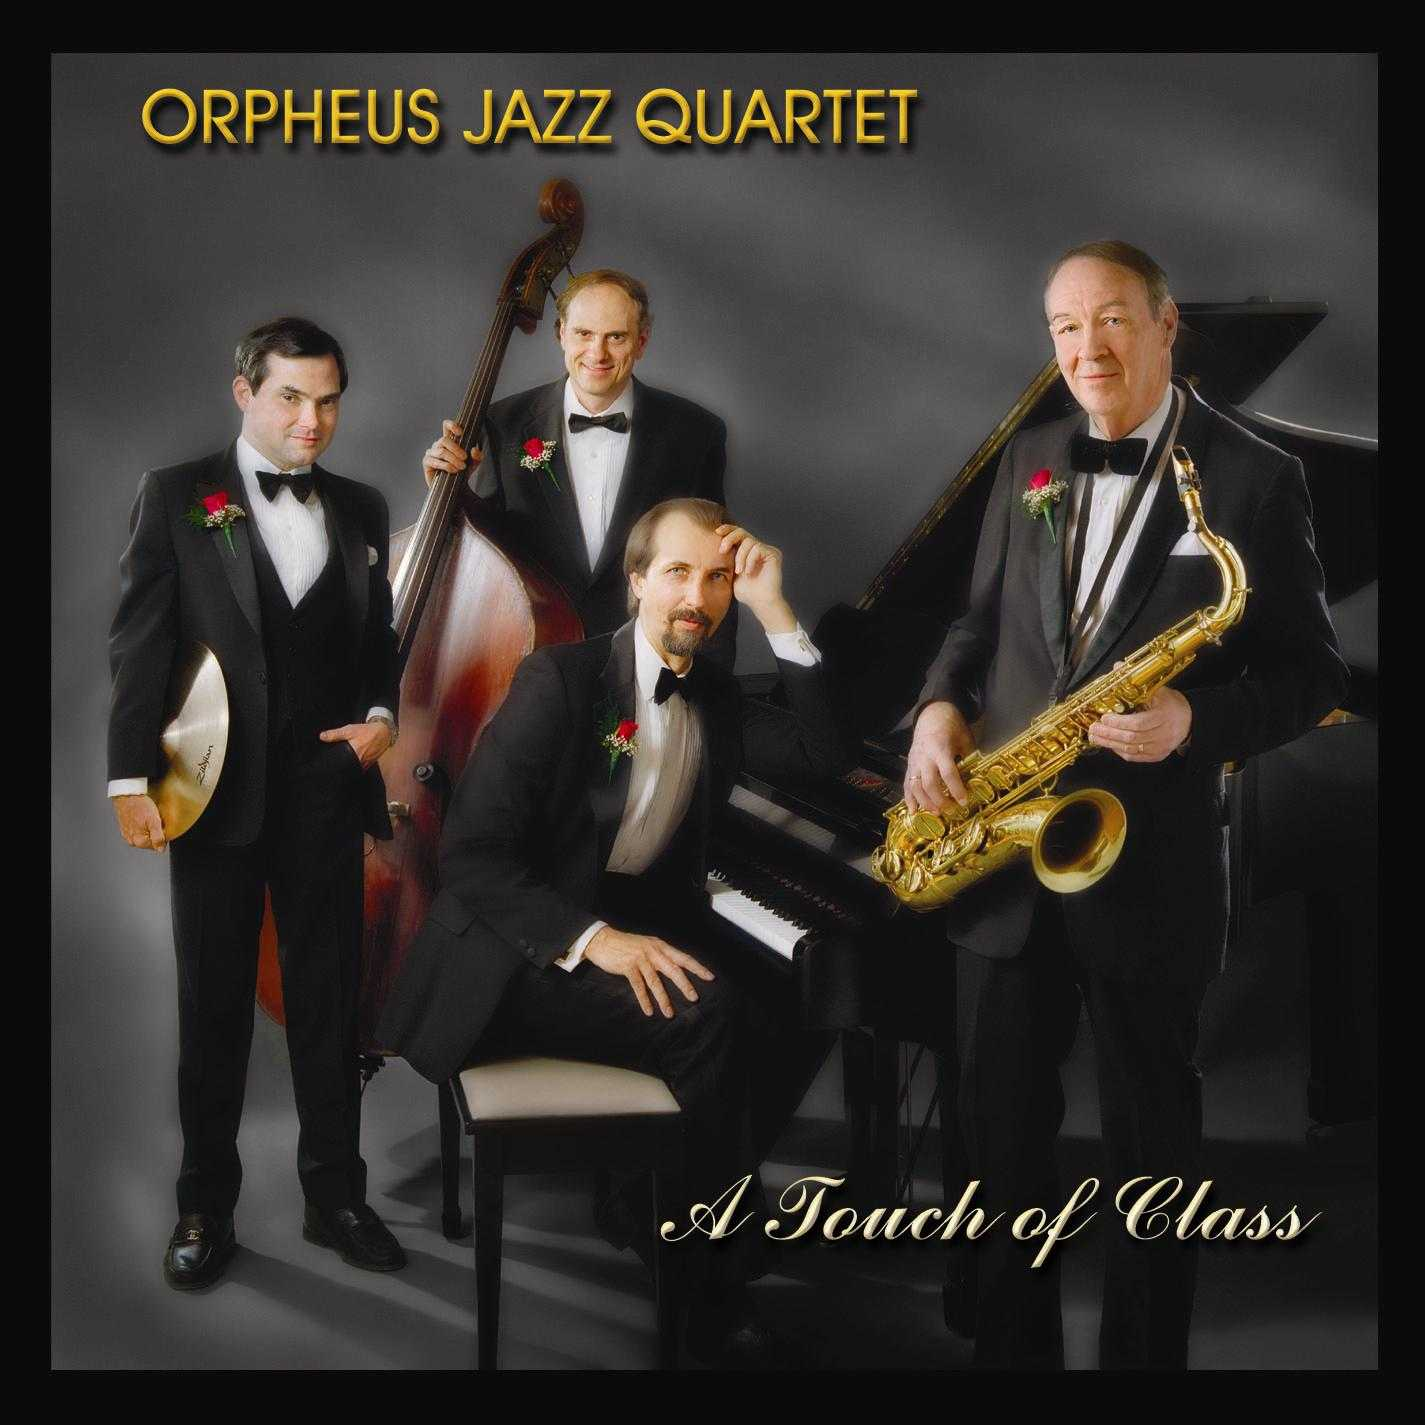 Great Jazz Band and Sax